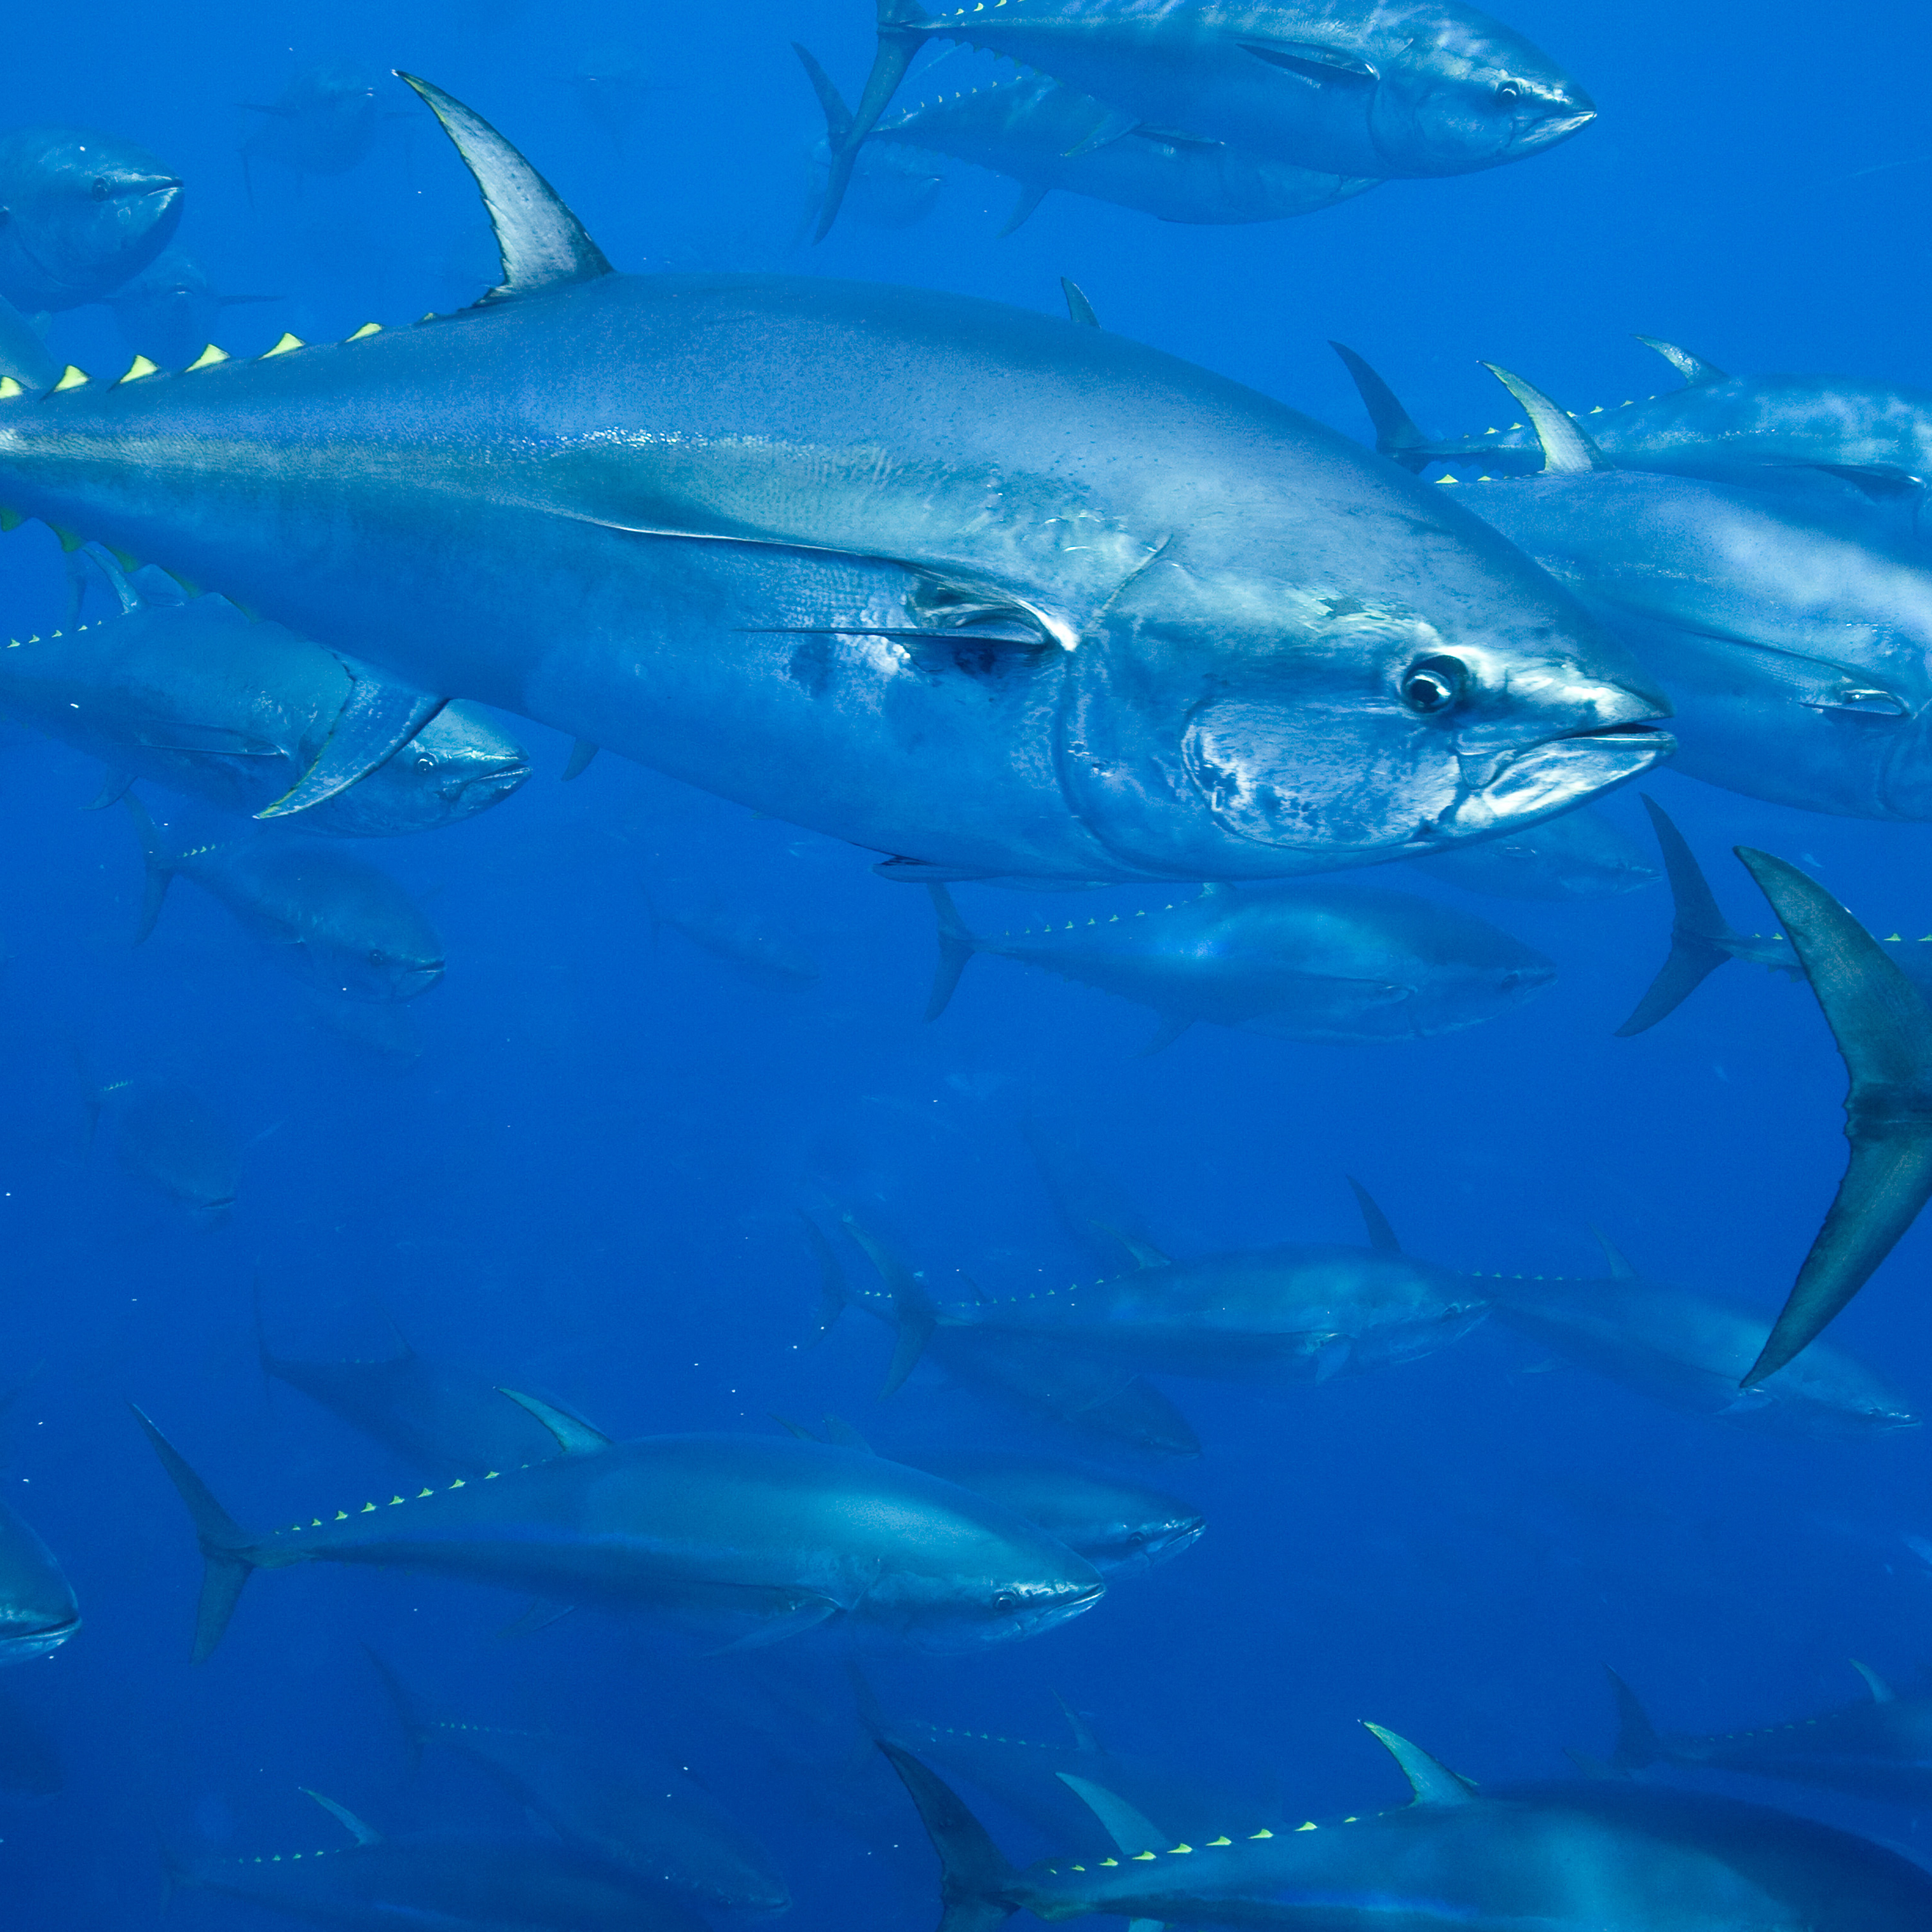 atlantic bluefin tuna The story of atlantic bluefin tuna is a cautionary tale of explosive growth, management neglect, ignored science, falling populations, and an uncertain future.